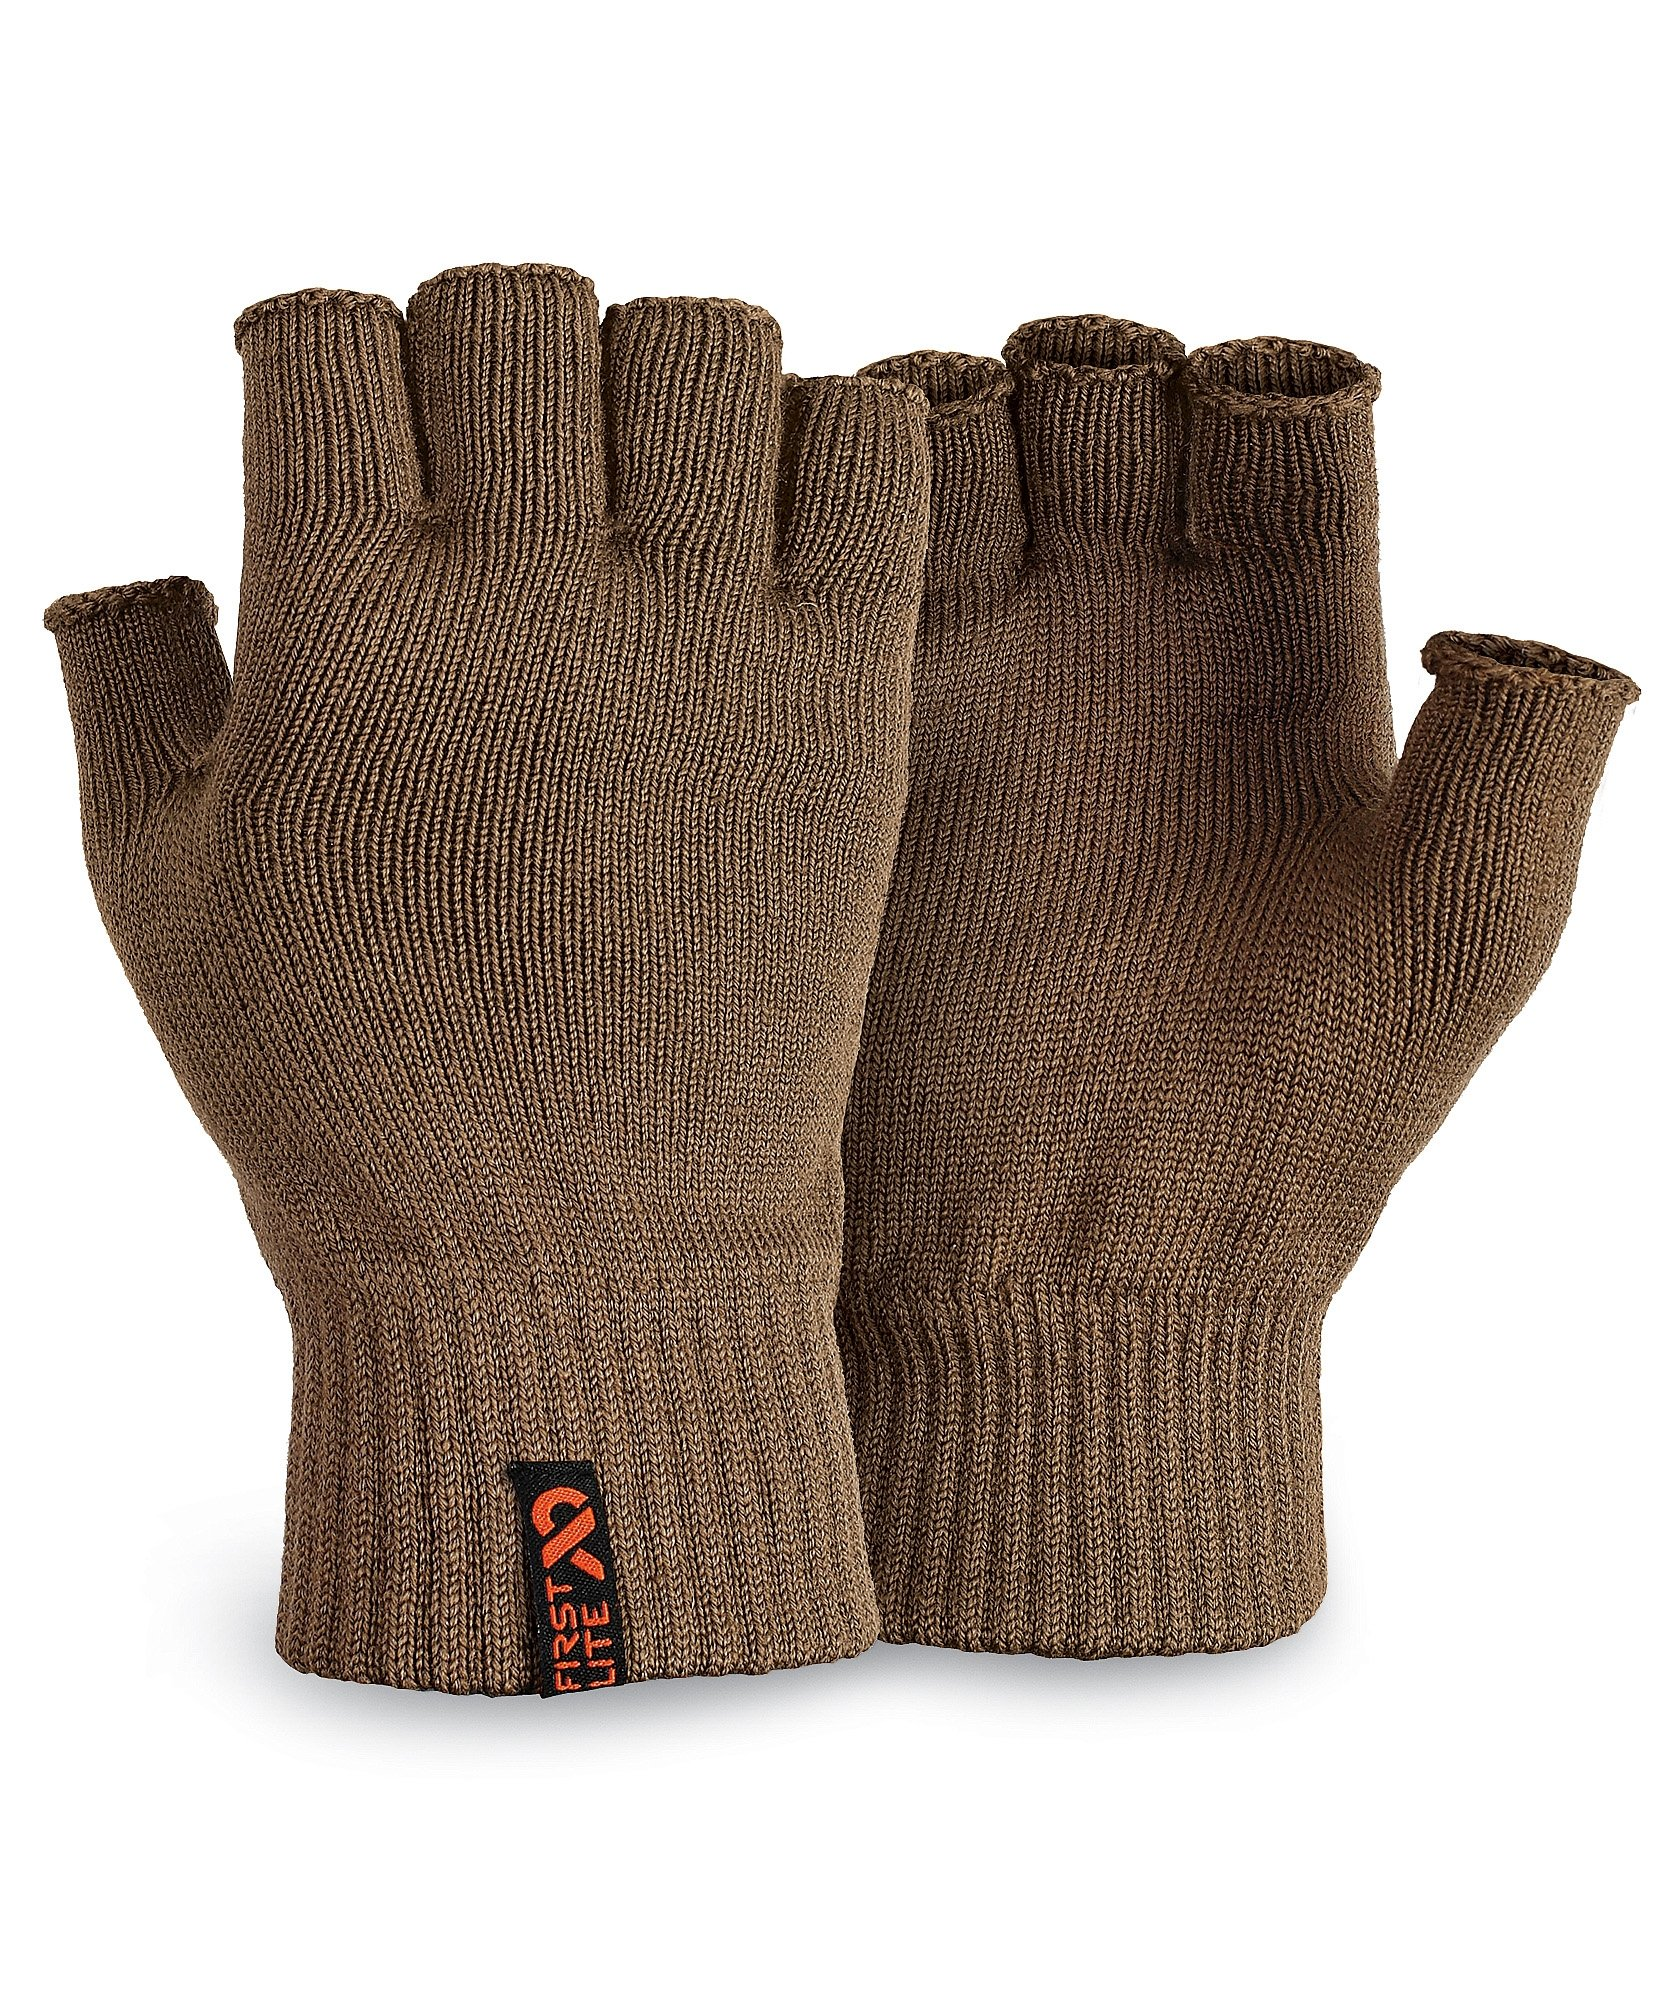 First Lite - Talus Merino Fingerless Glove in Dry Earth LG - Dry Earth by First Lite